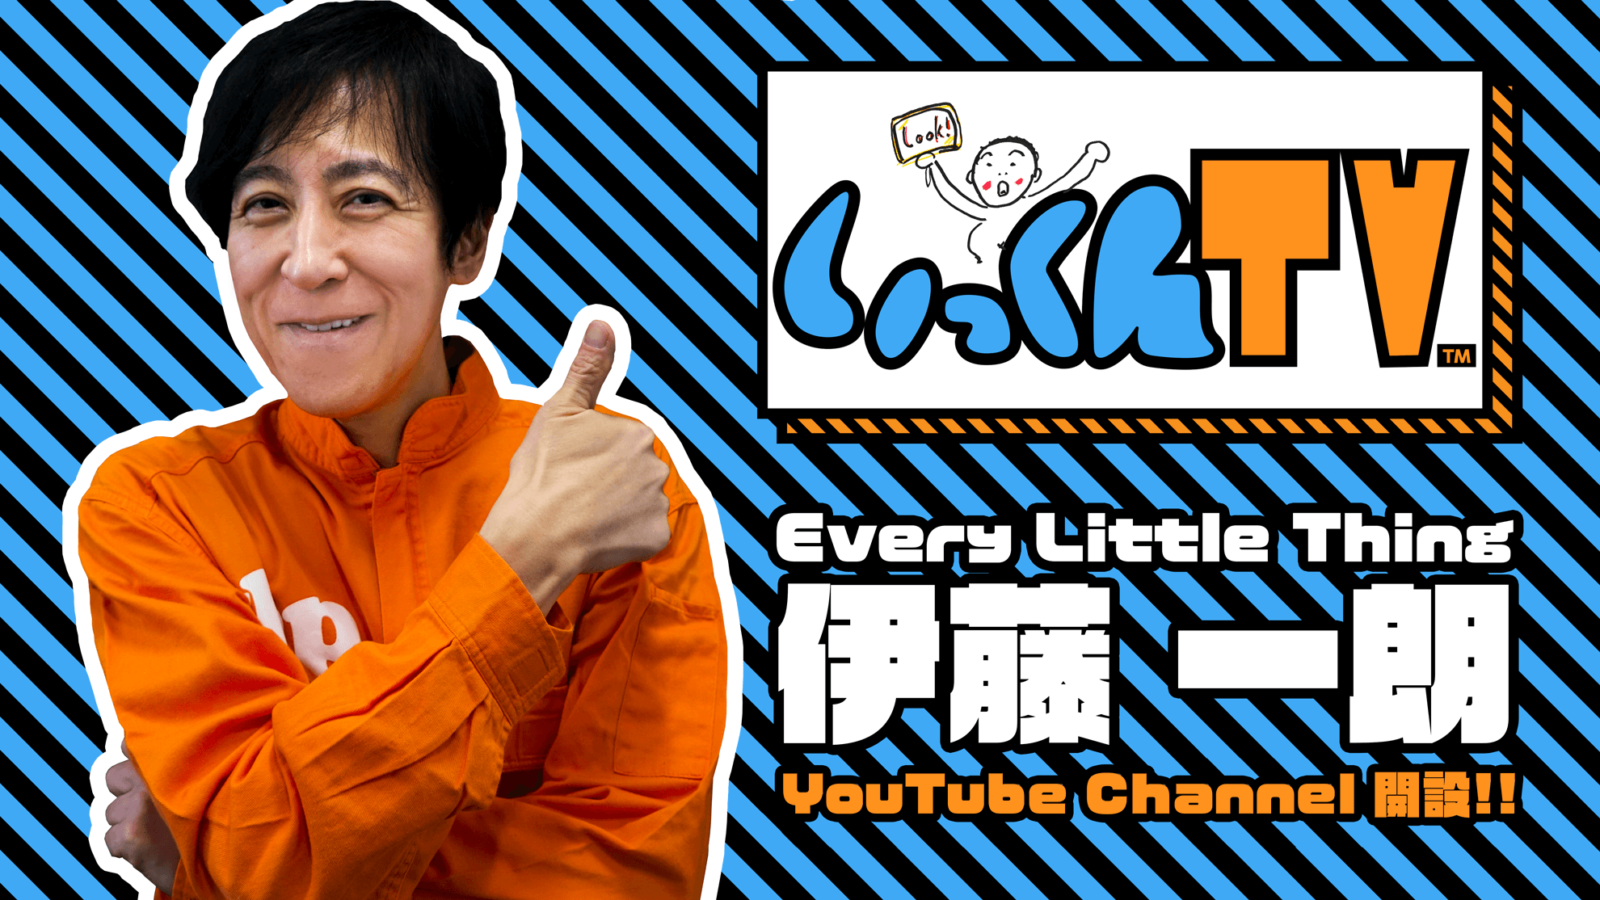 Every Little Thing 伊藤 一朗 YouTubeチャンネル開設サムネイル画像